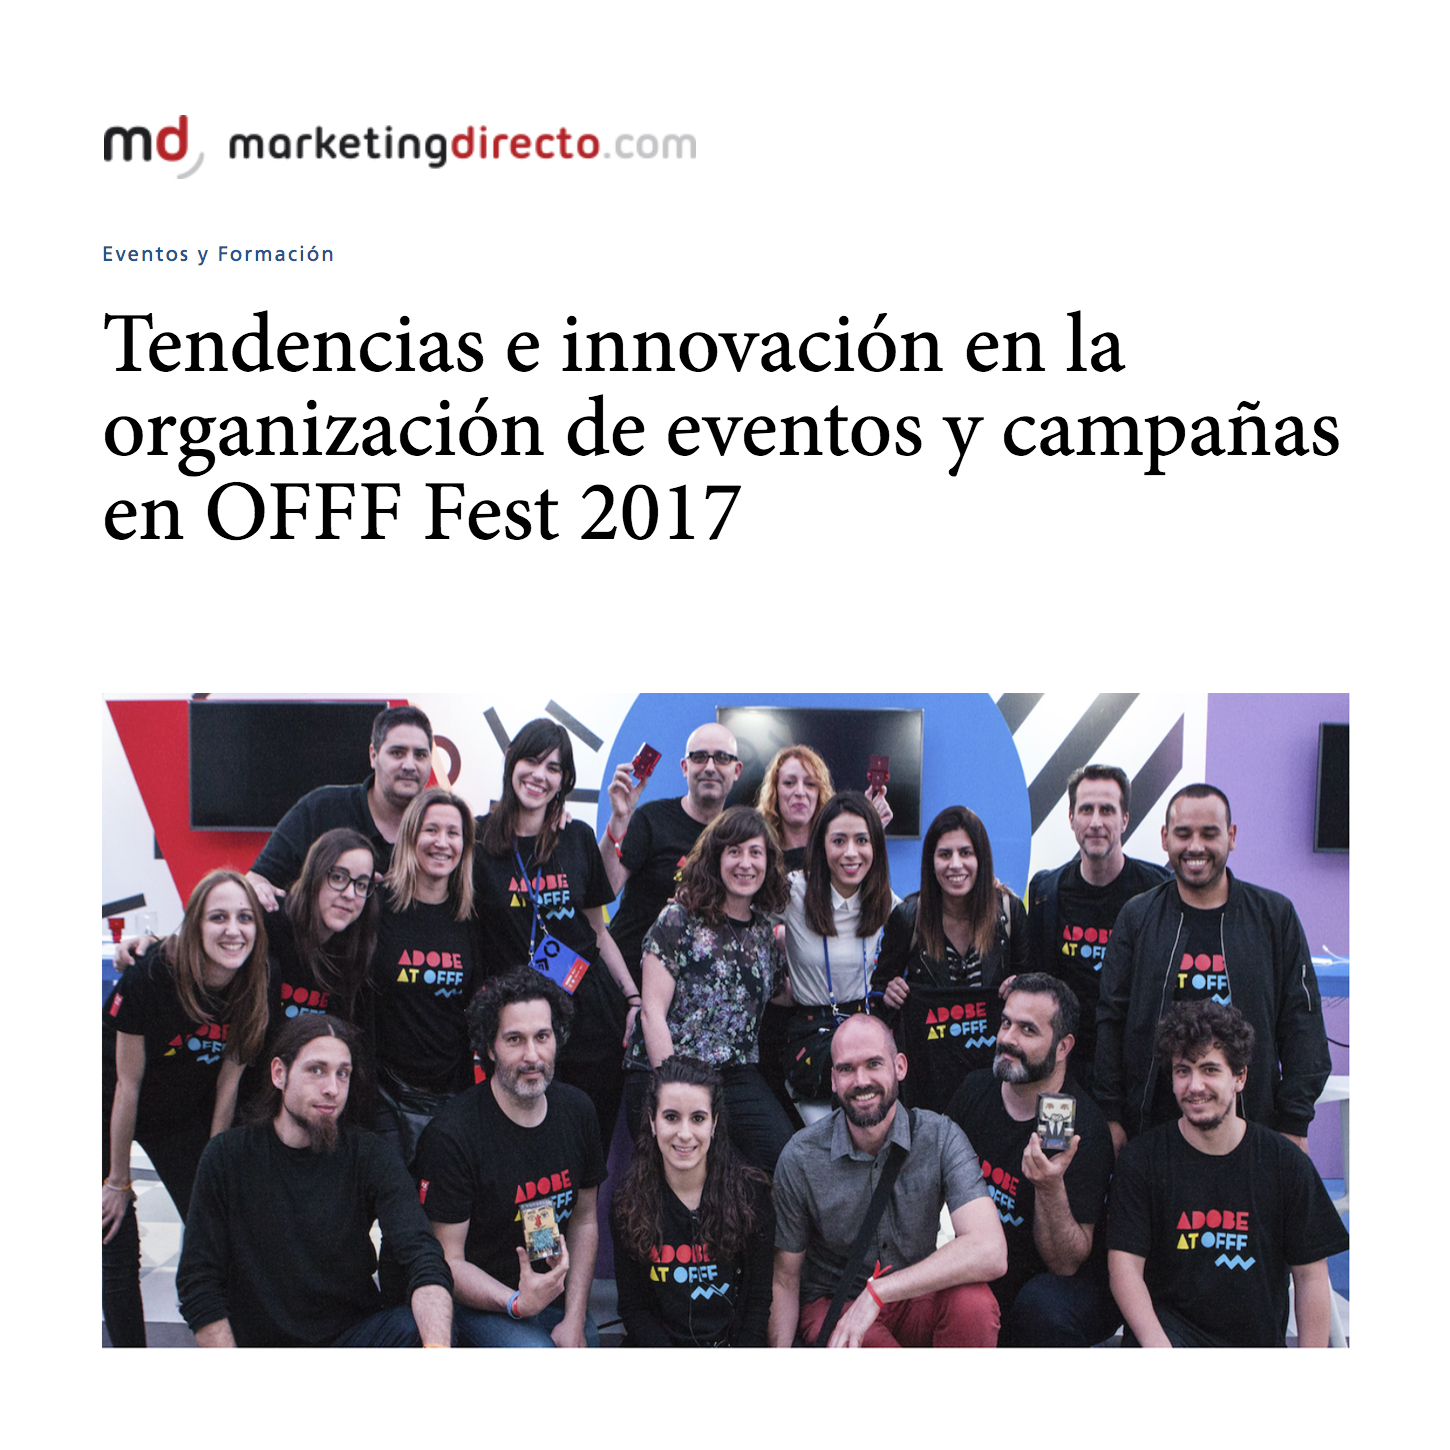 Trends and innovation in the organization of events at offf 2017